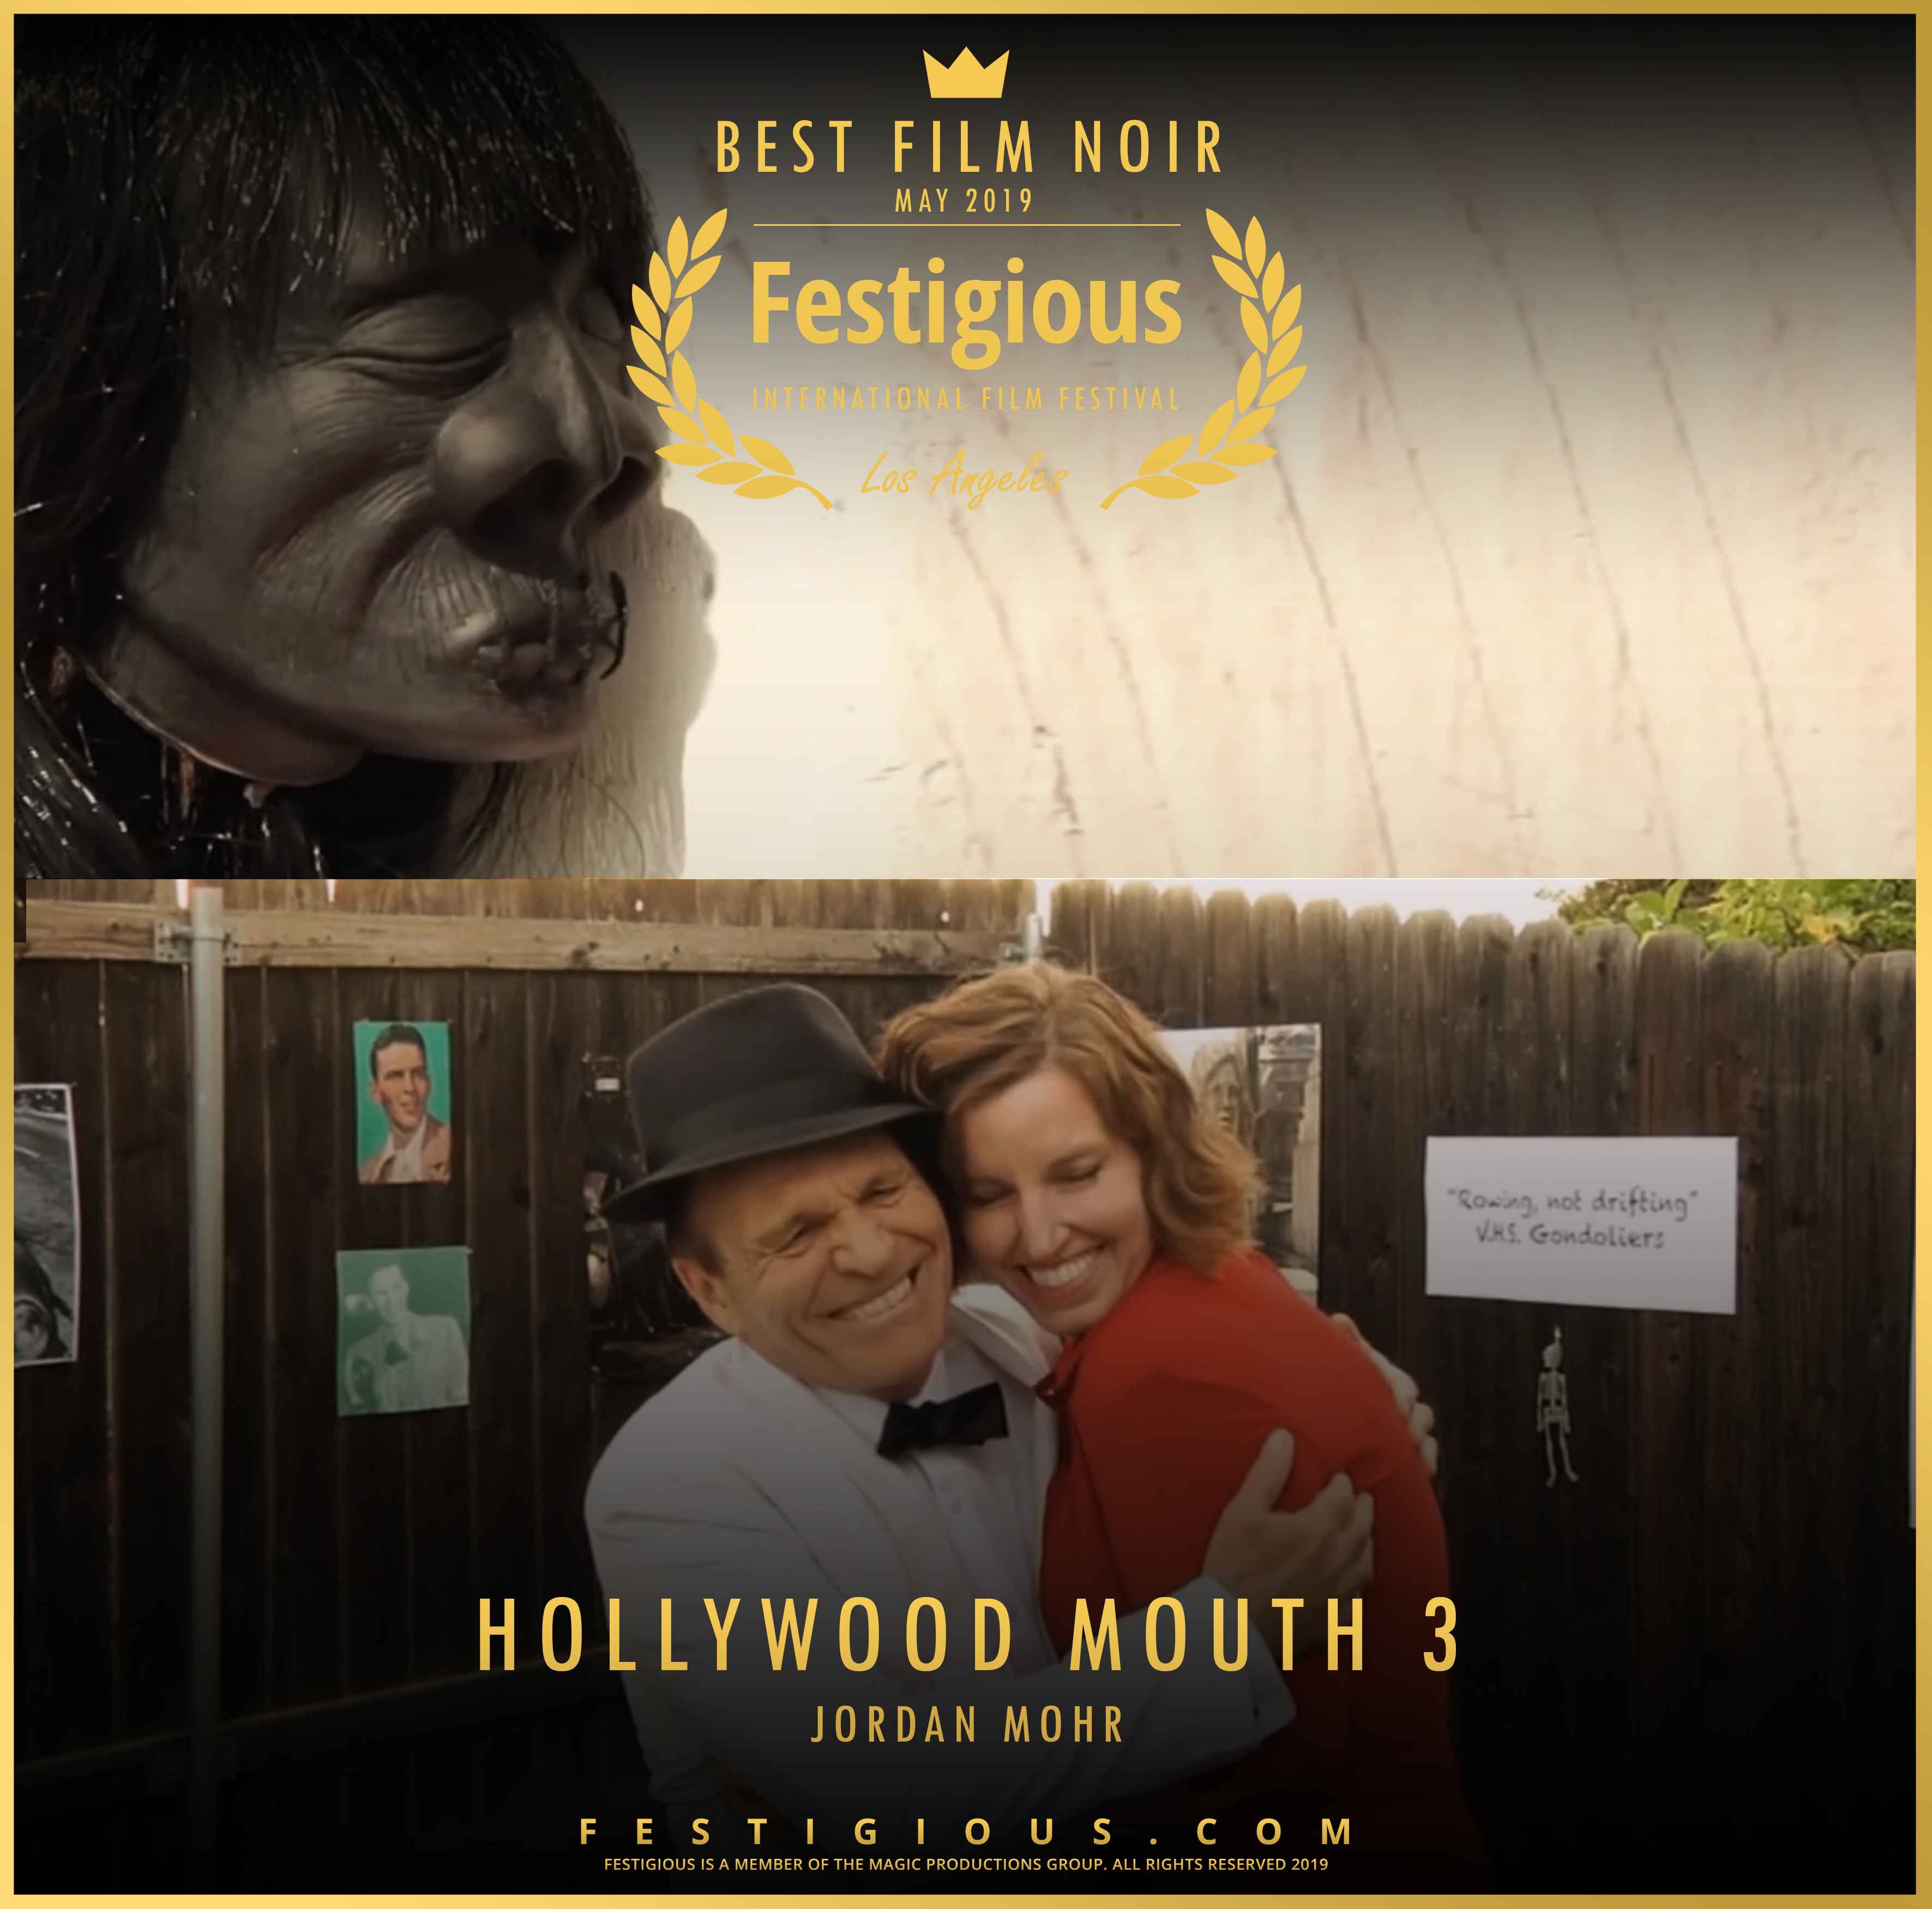 HOLLYWOOD MOUTH 3 design